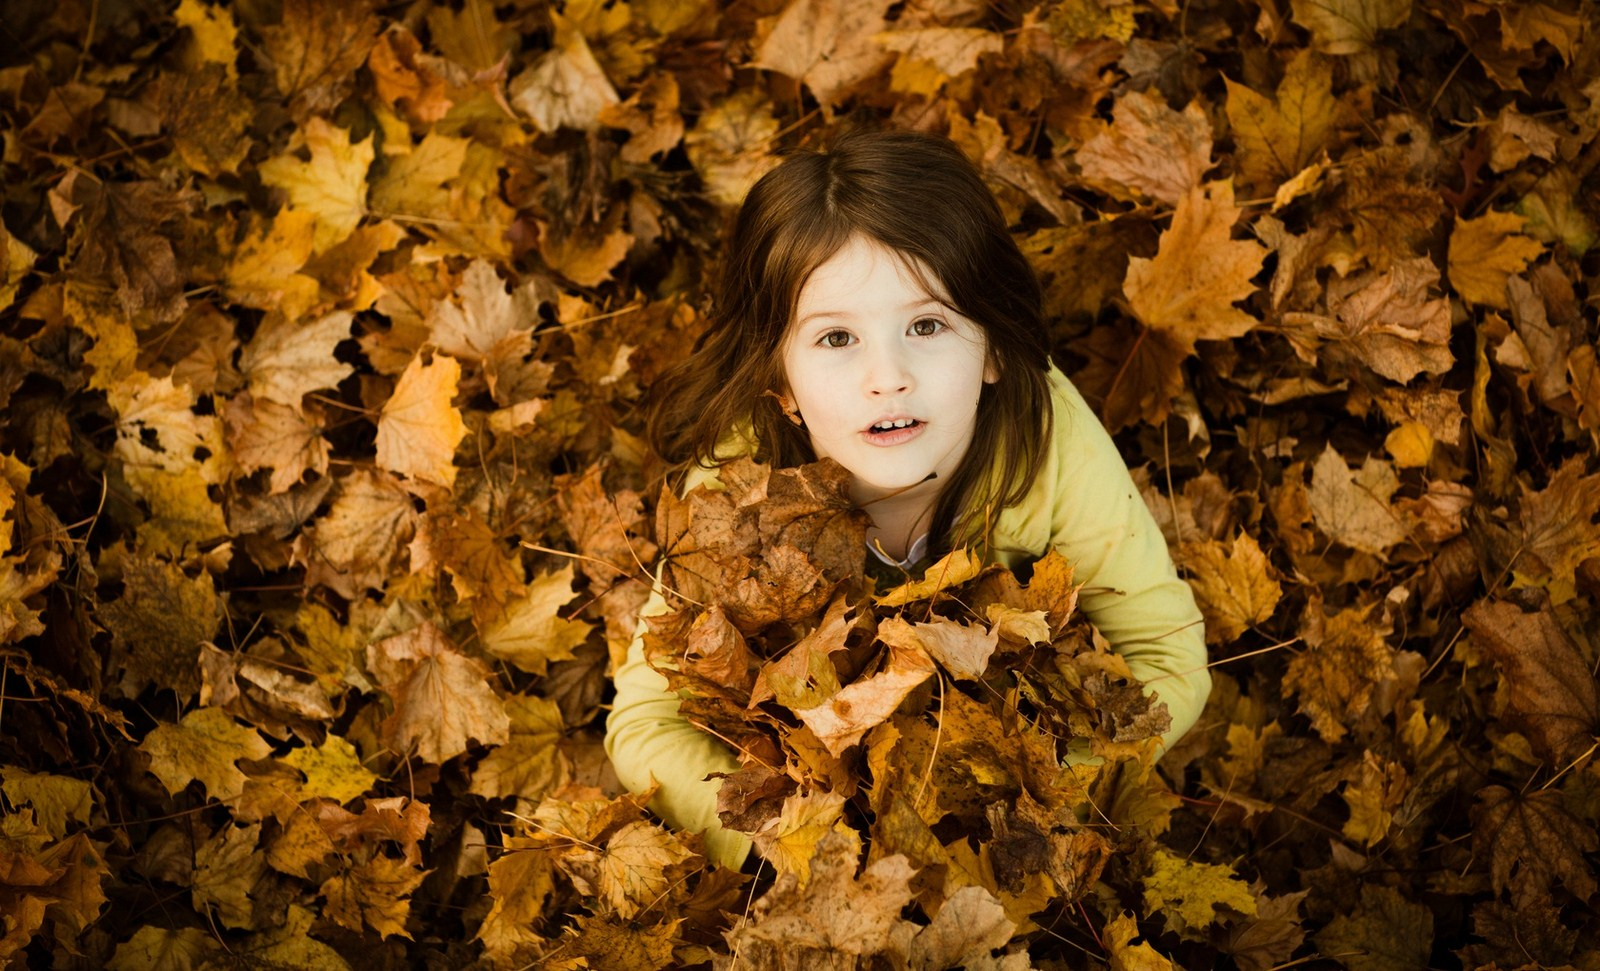 Children girl mood leaves smiling autumn yellow photo hd wallpaper